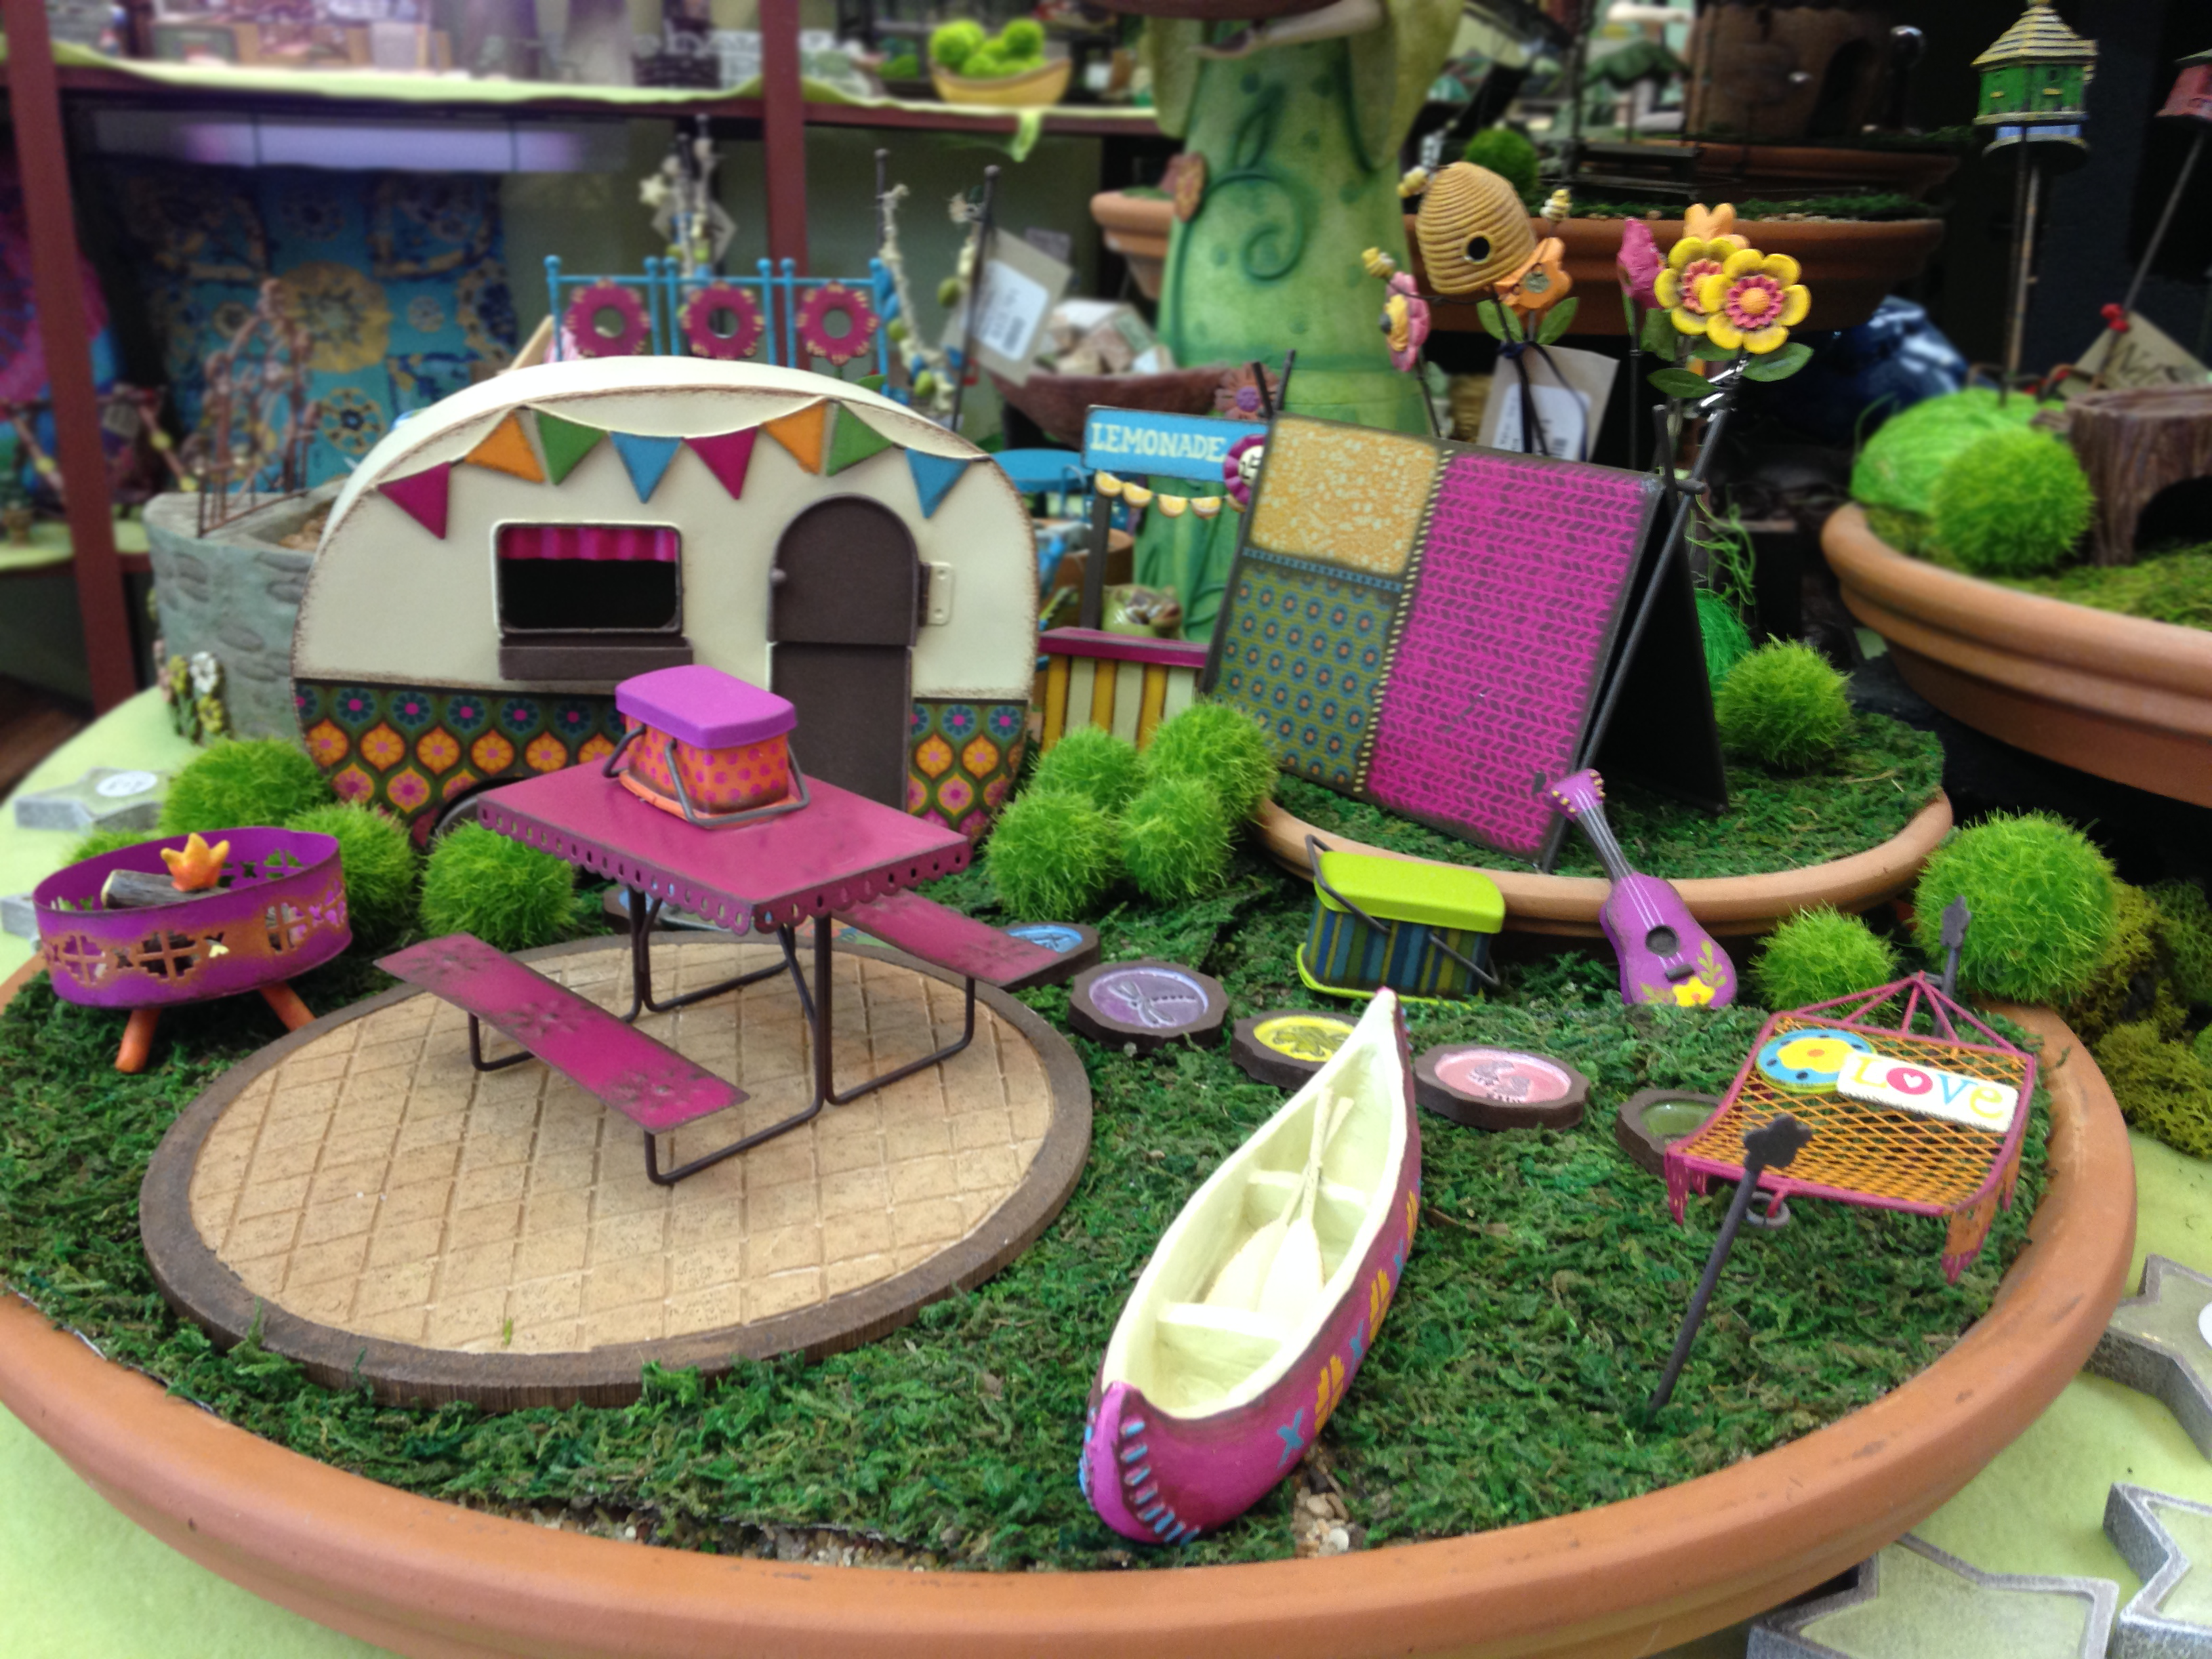 Cute Camping Fairy Garden Set Up In Our Shop!